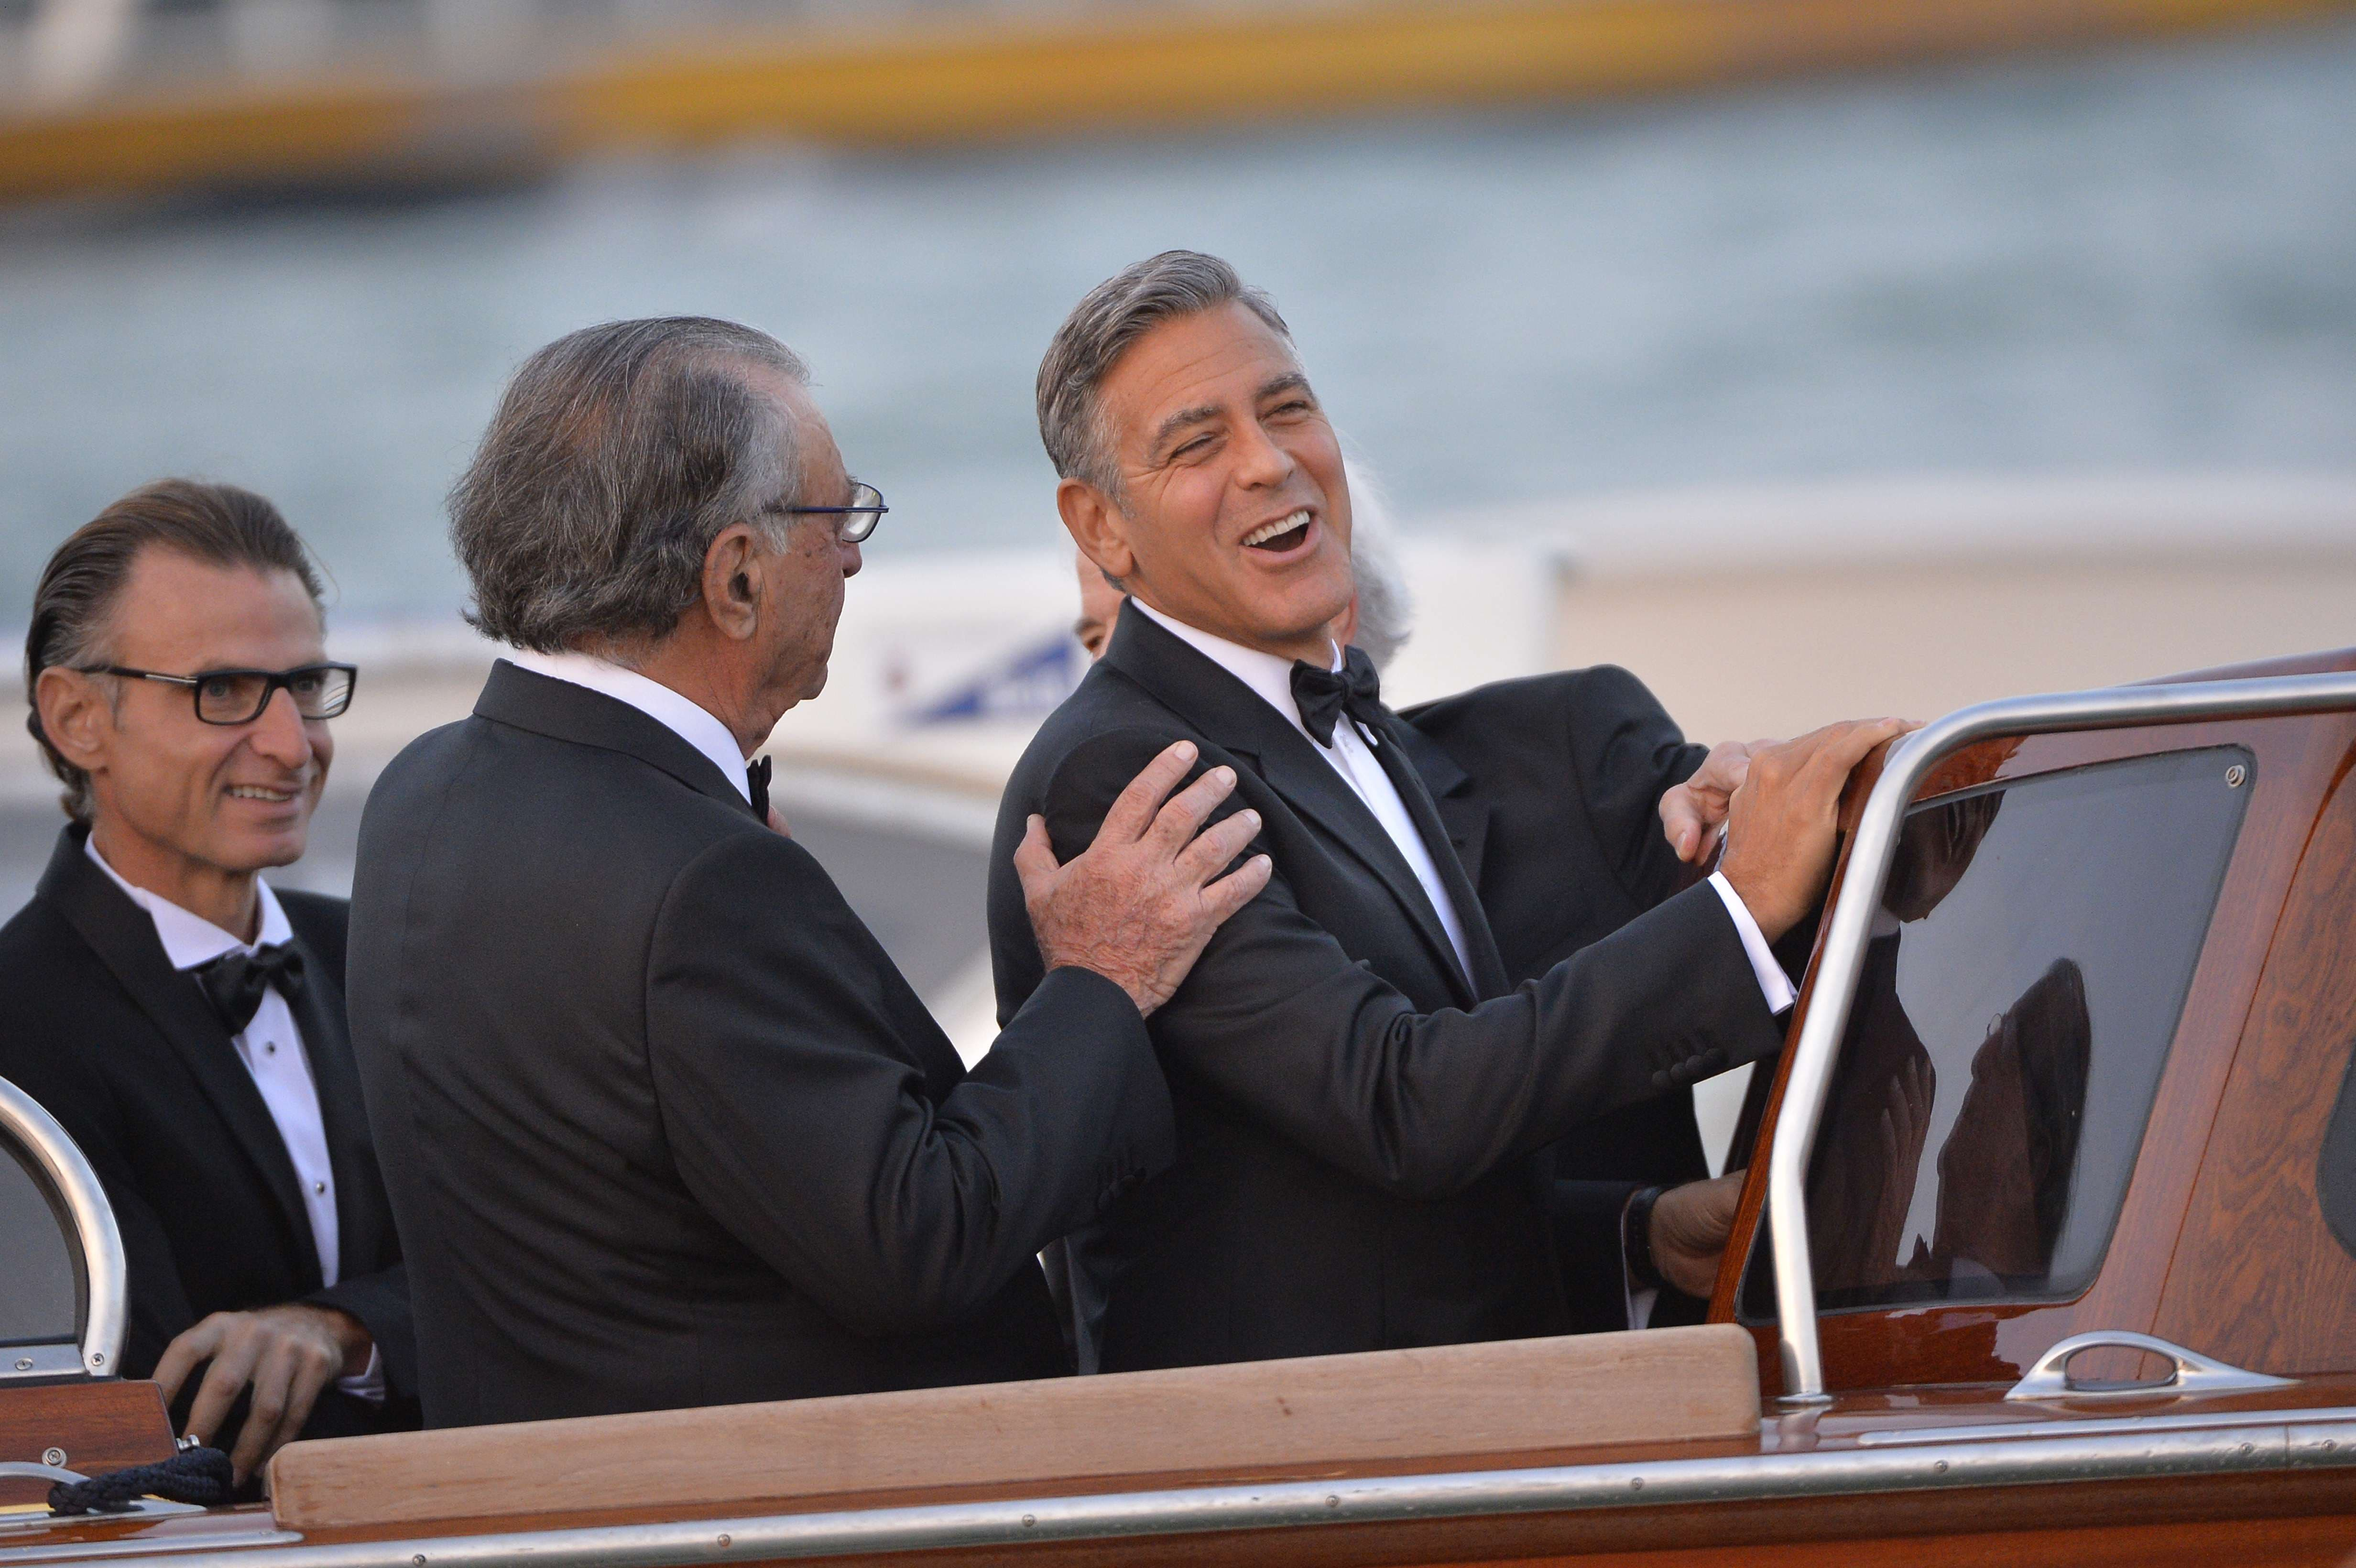 US actor George Clooney (R) is pictured on a taxi boat after he leaves the Cipriani hotel on September 27, 2014. (AFP)